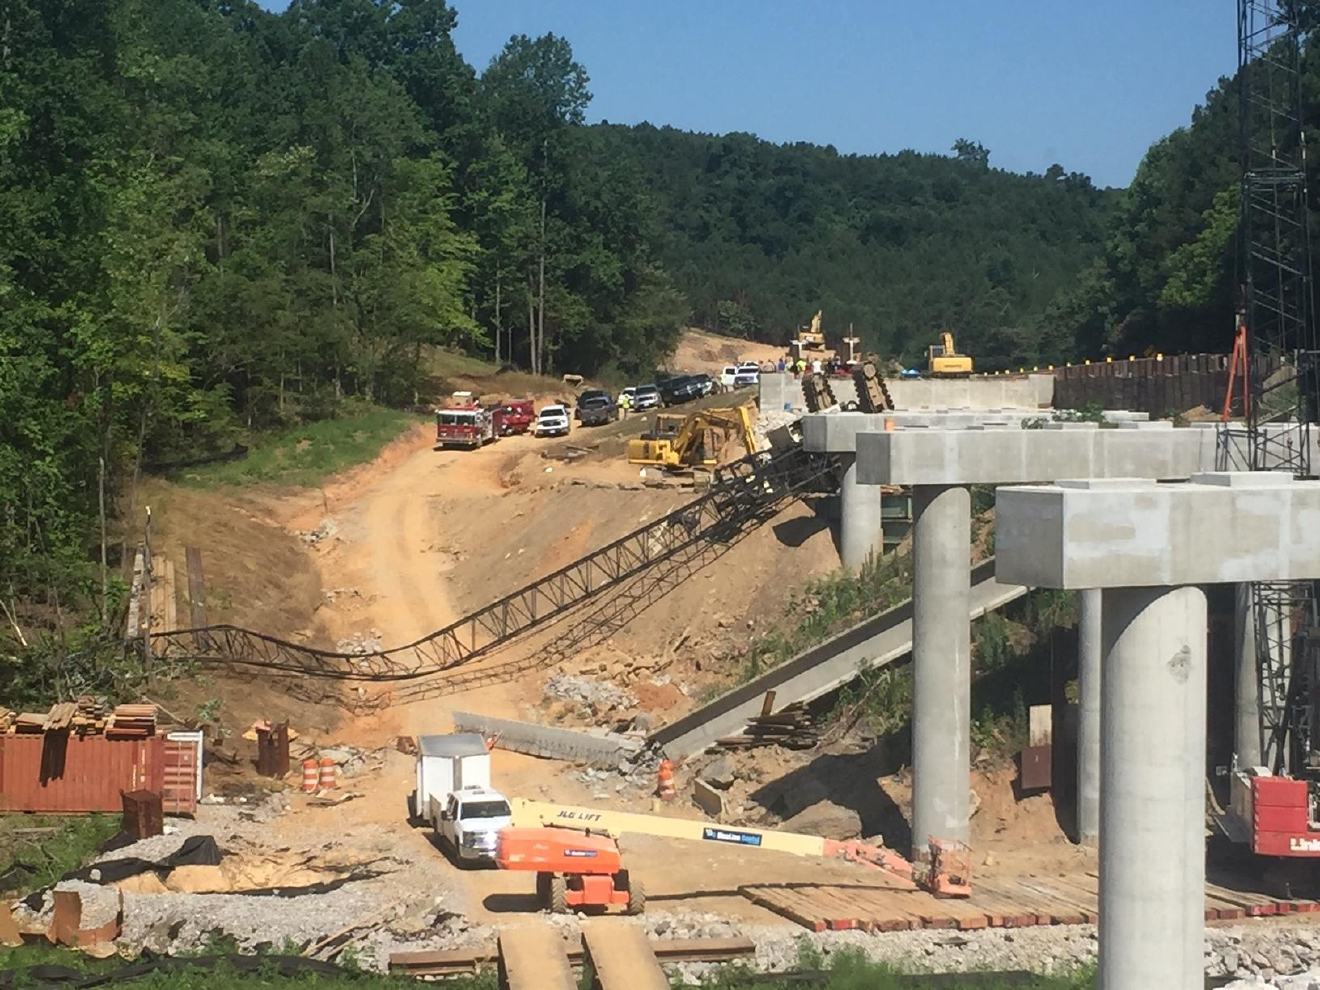 An overturned crane at the crash site in Parrish near Highway 269 in Walker County, Ala., Monday, June 13, 2016. (abc3340.com)